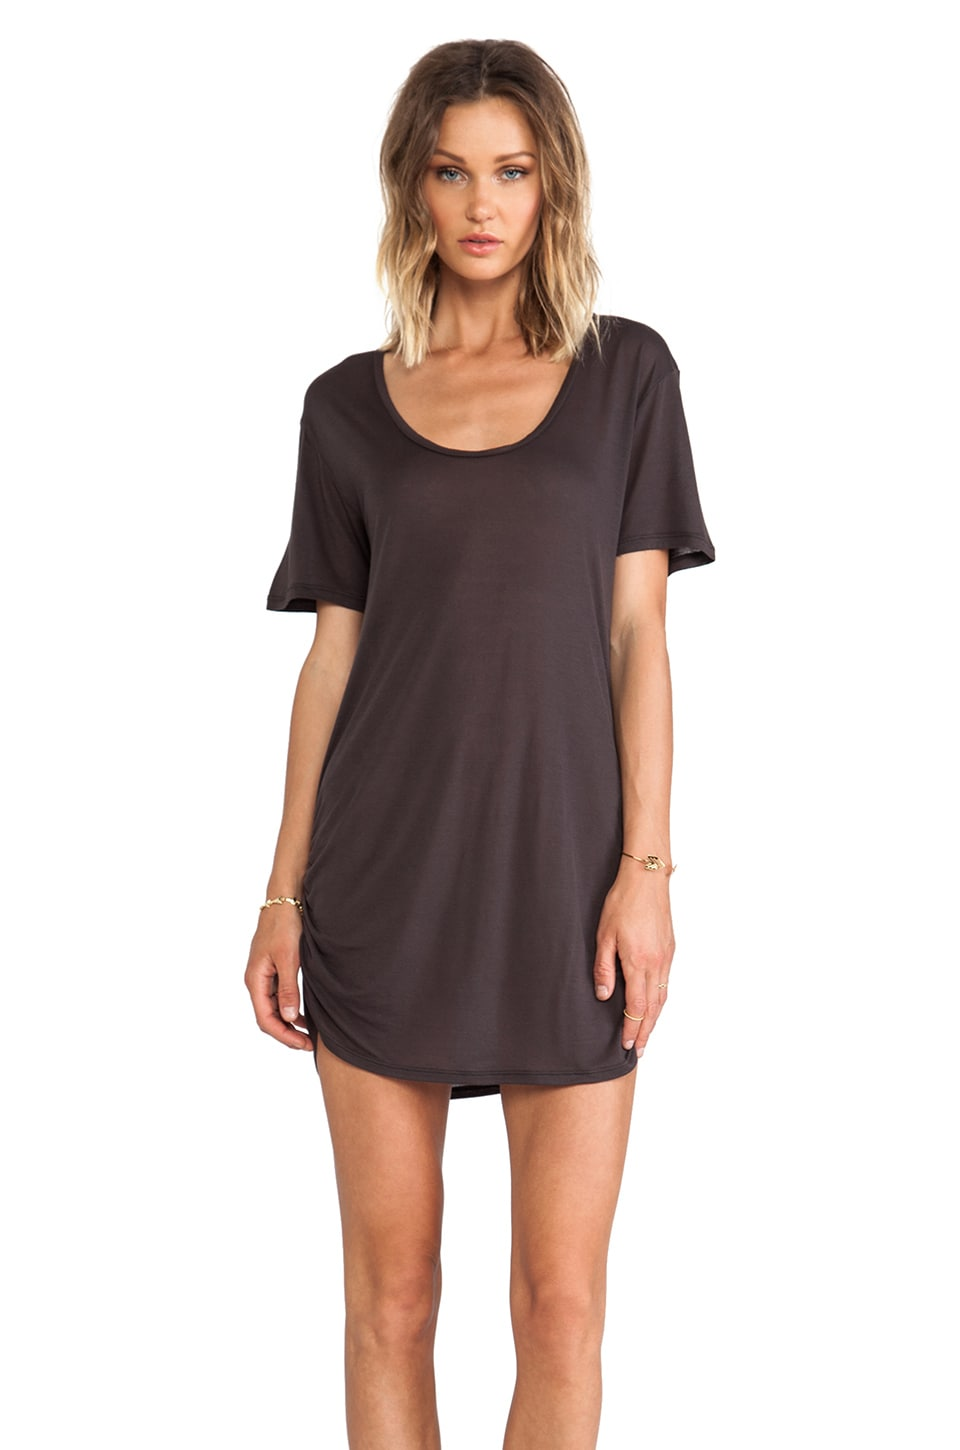 Blue Life Festival T-Shirt Dress in Faded Black